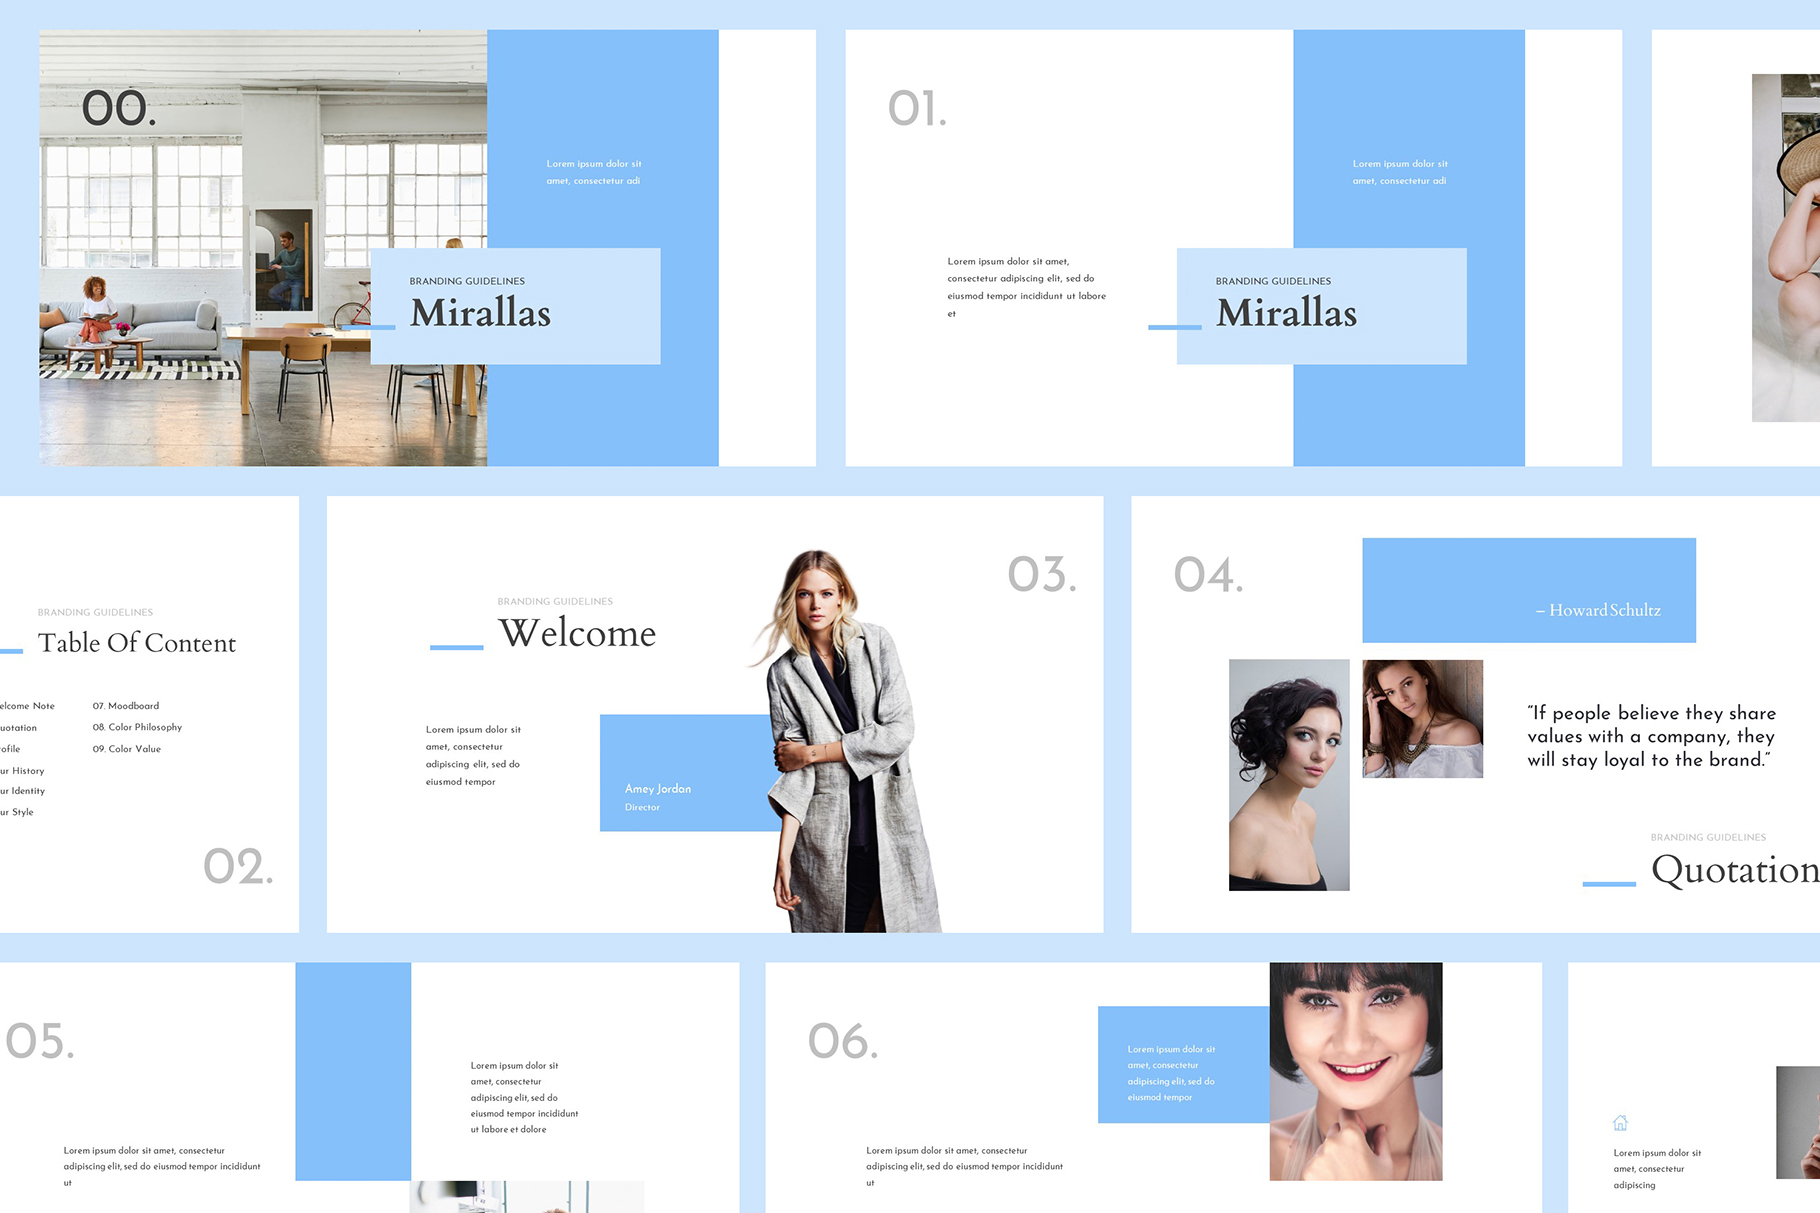 Mirallas Brand Guidelines Powerpoint example image 1